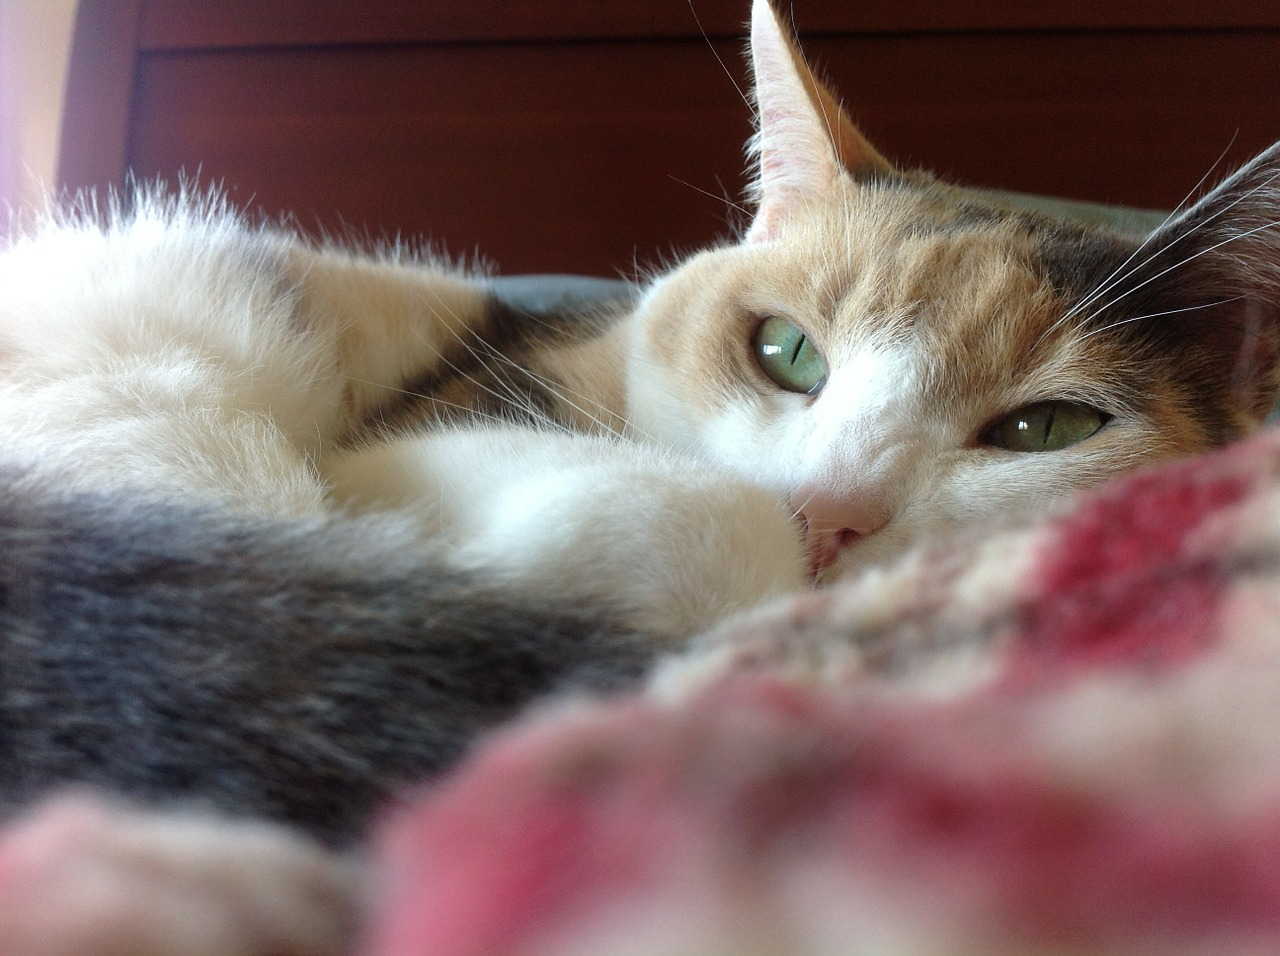 cat calico resting cat free photo